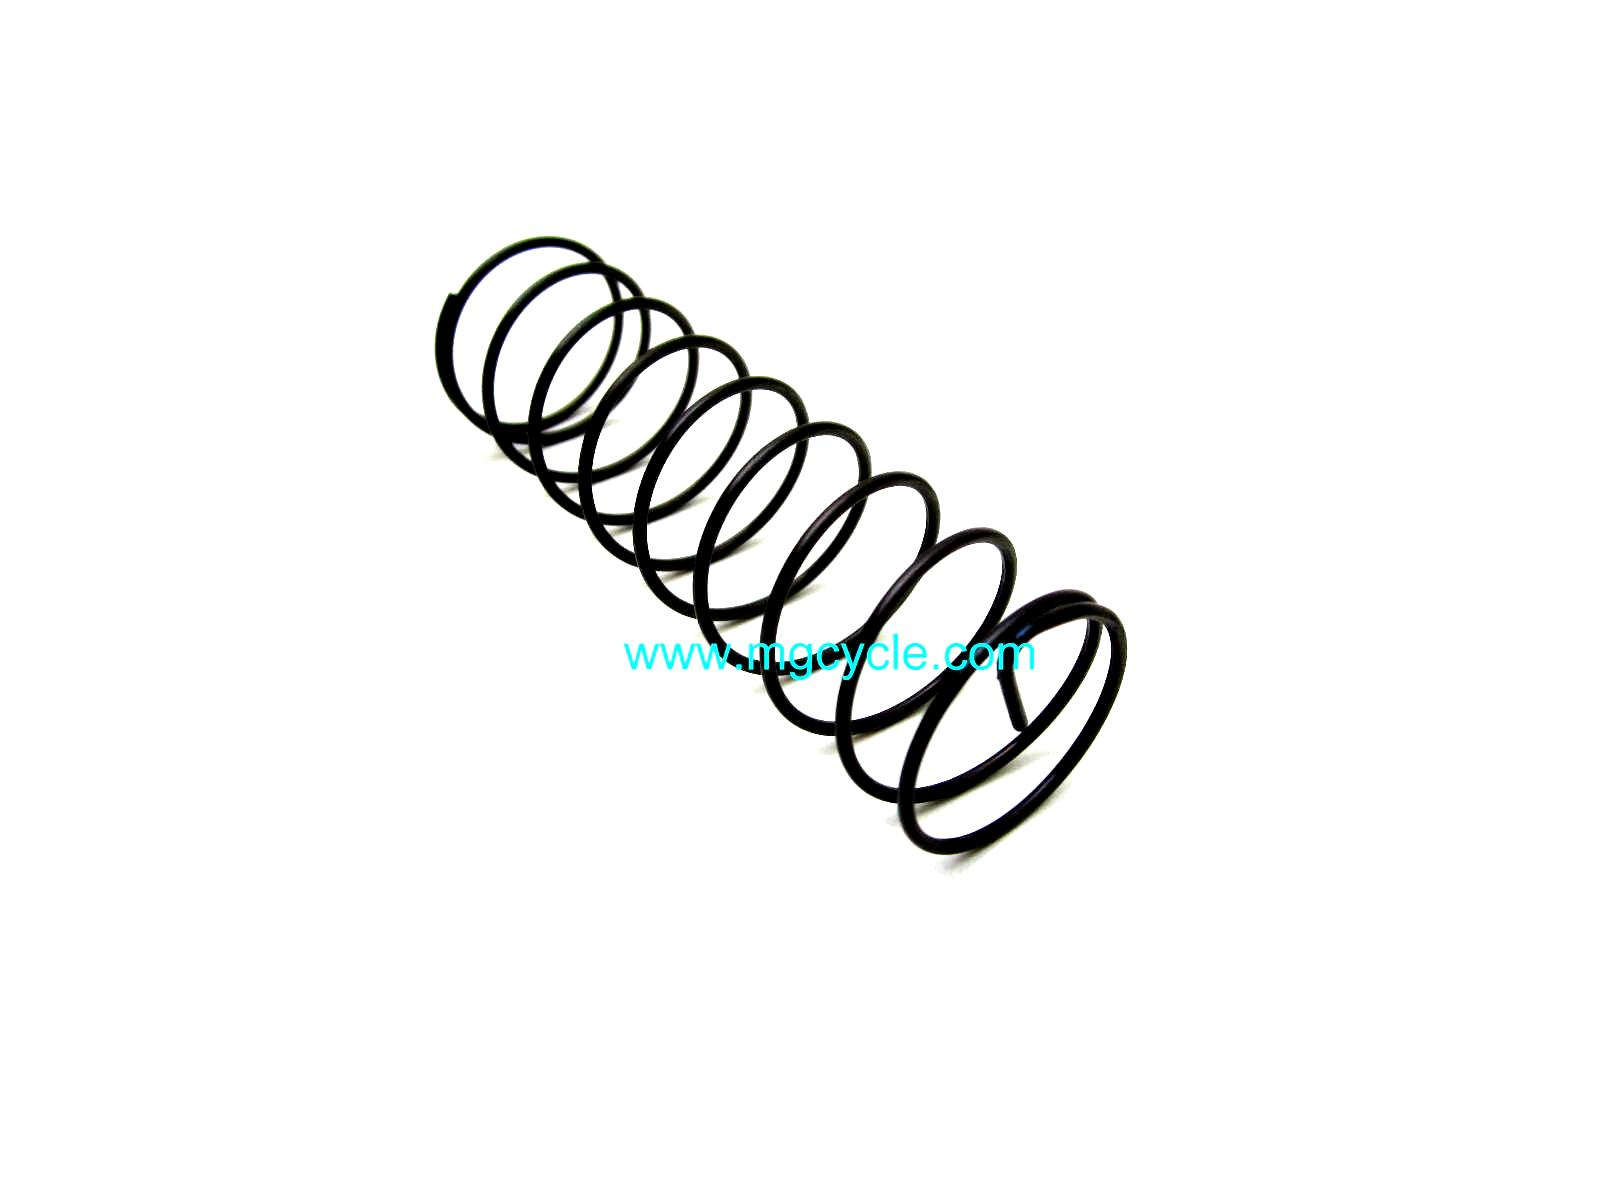 Dellorto 7941 light throttle slide spring 1.1kg/35mm VHB29 VHB30